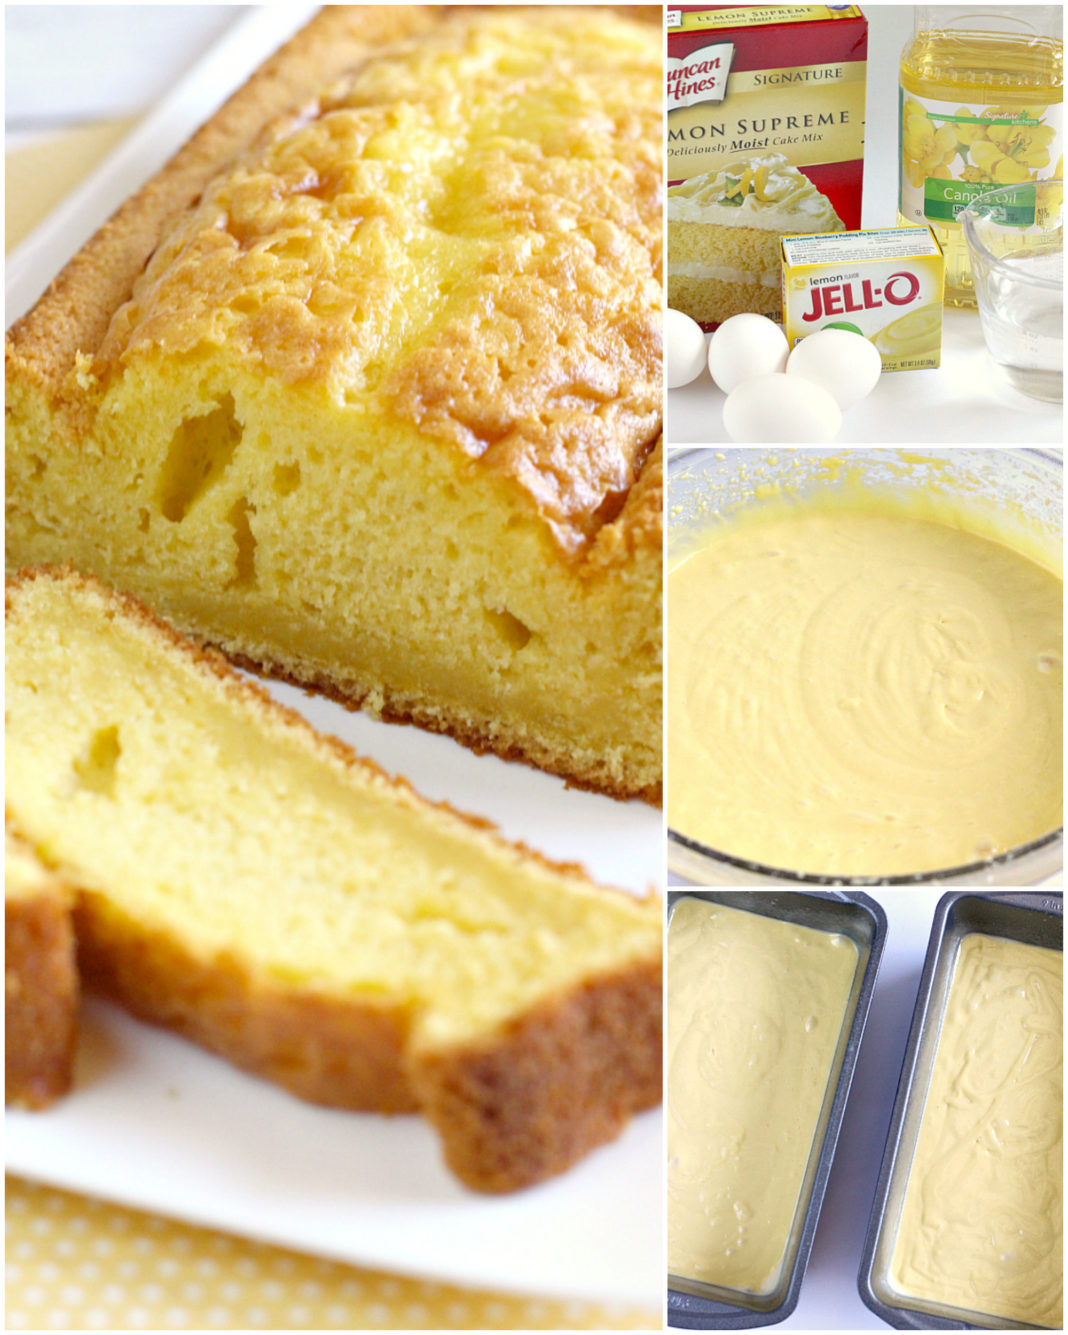 Step by step instructions on how to make Easy Lemon Bread with only 5 ingredients!